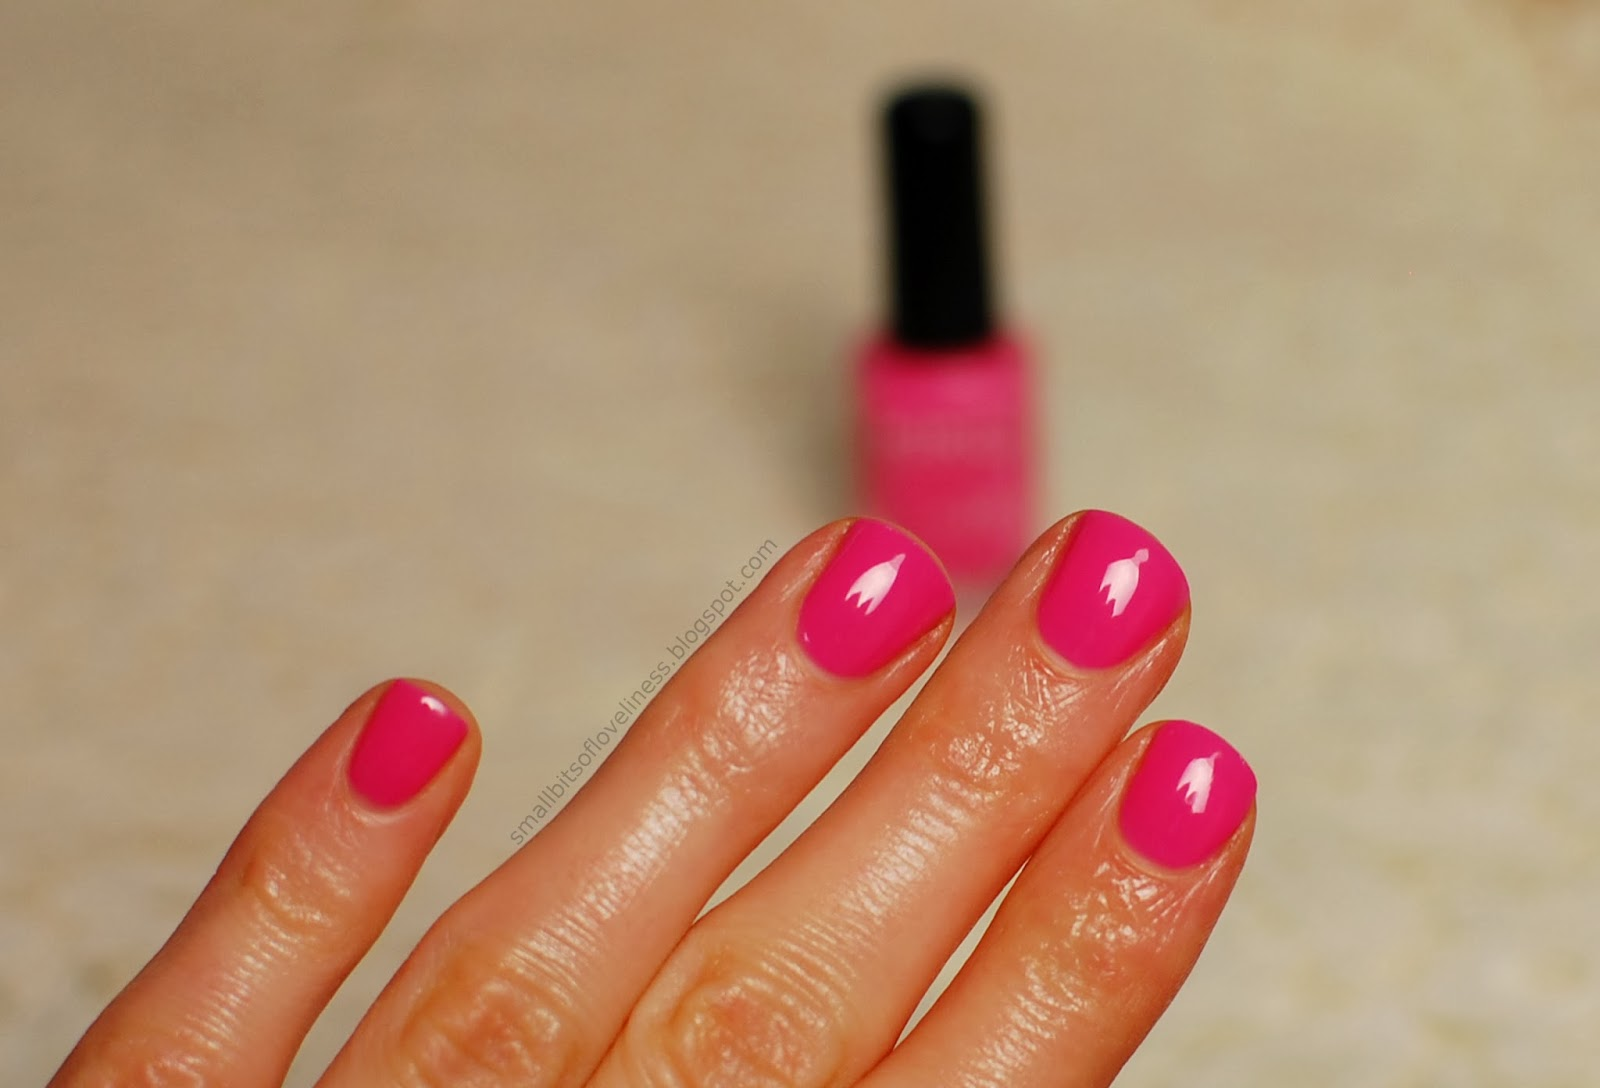 Kiko Nail Polish 288, Flamingo Pink